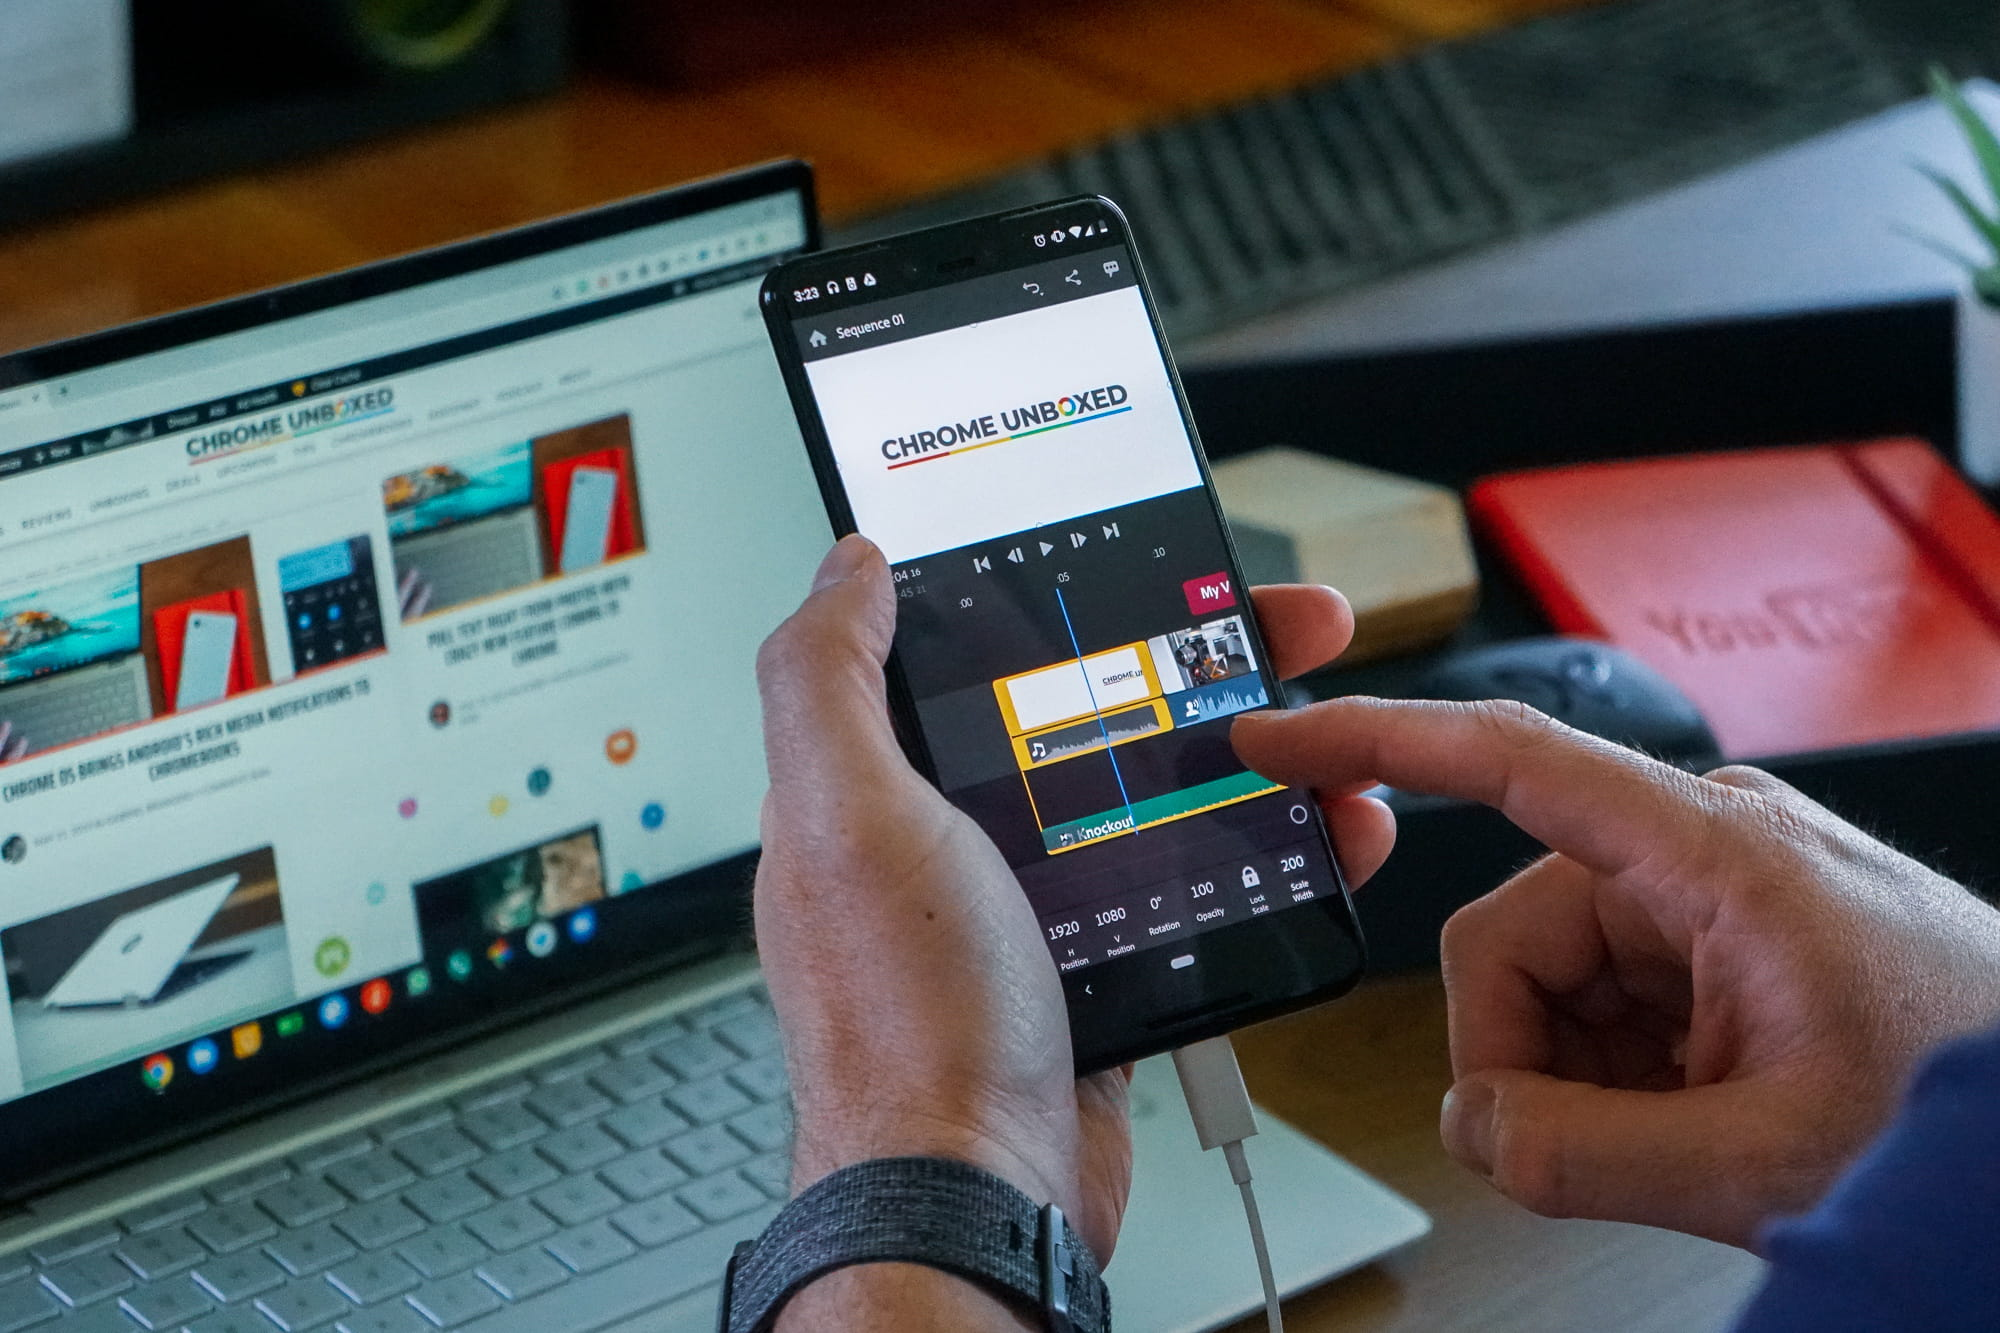 Adobe Premiere Rush Lands on Android Today, Chromebooks Support Coming Soon